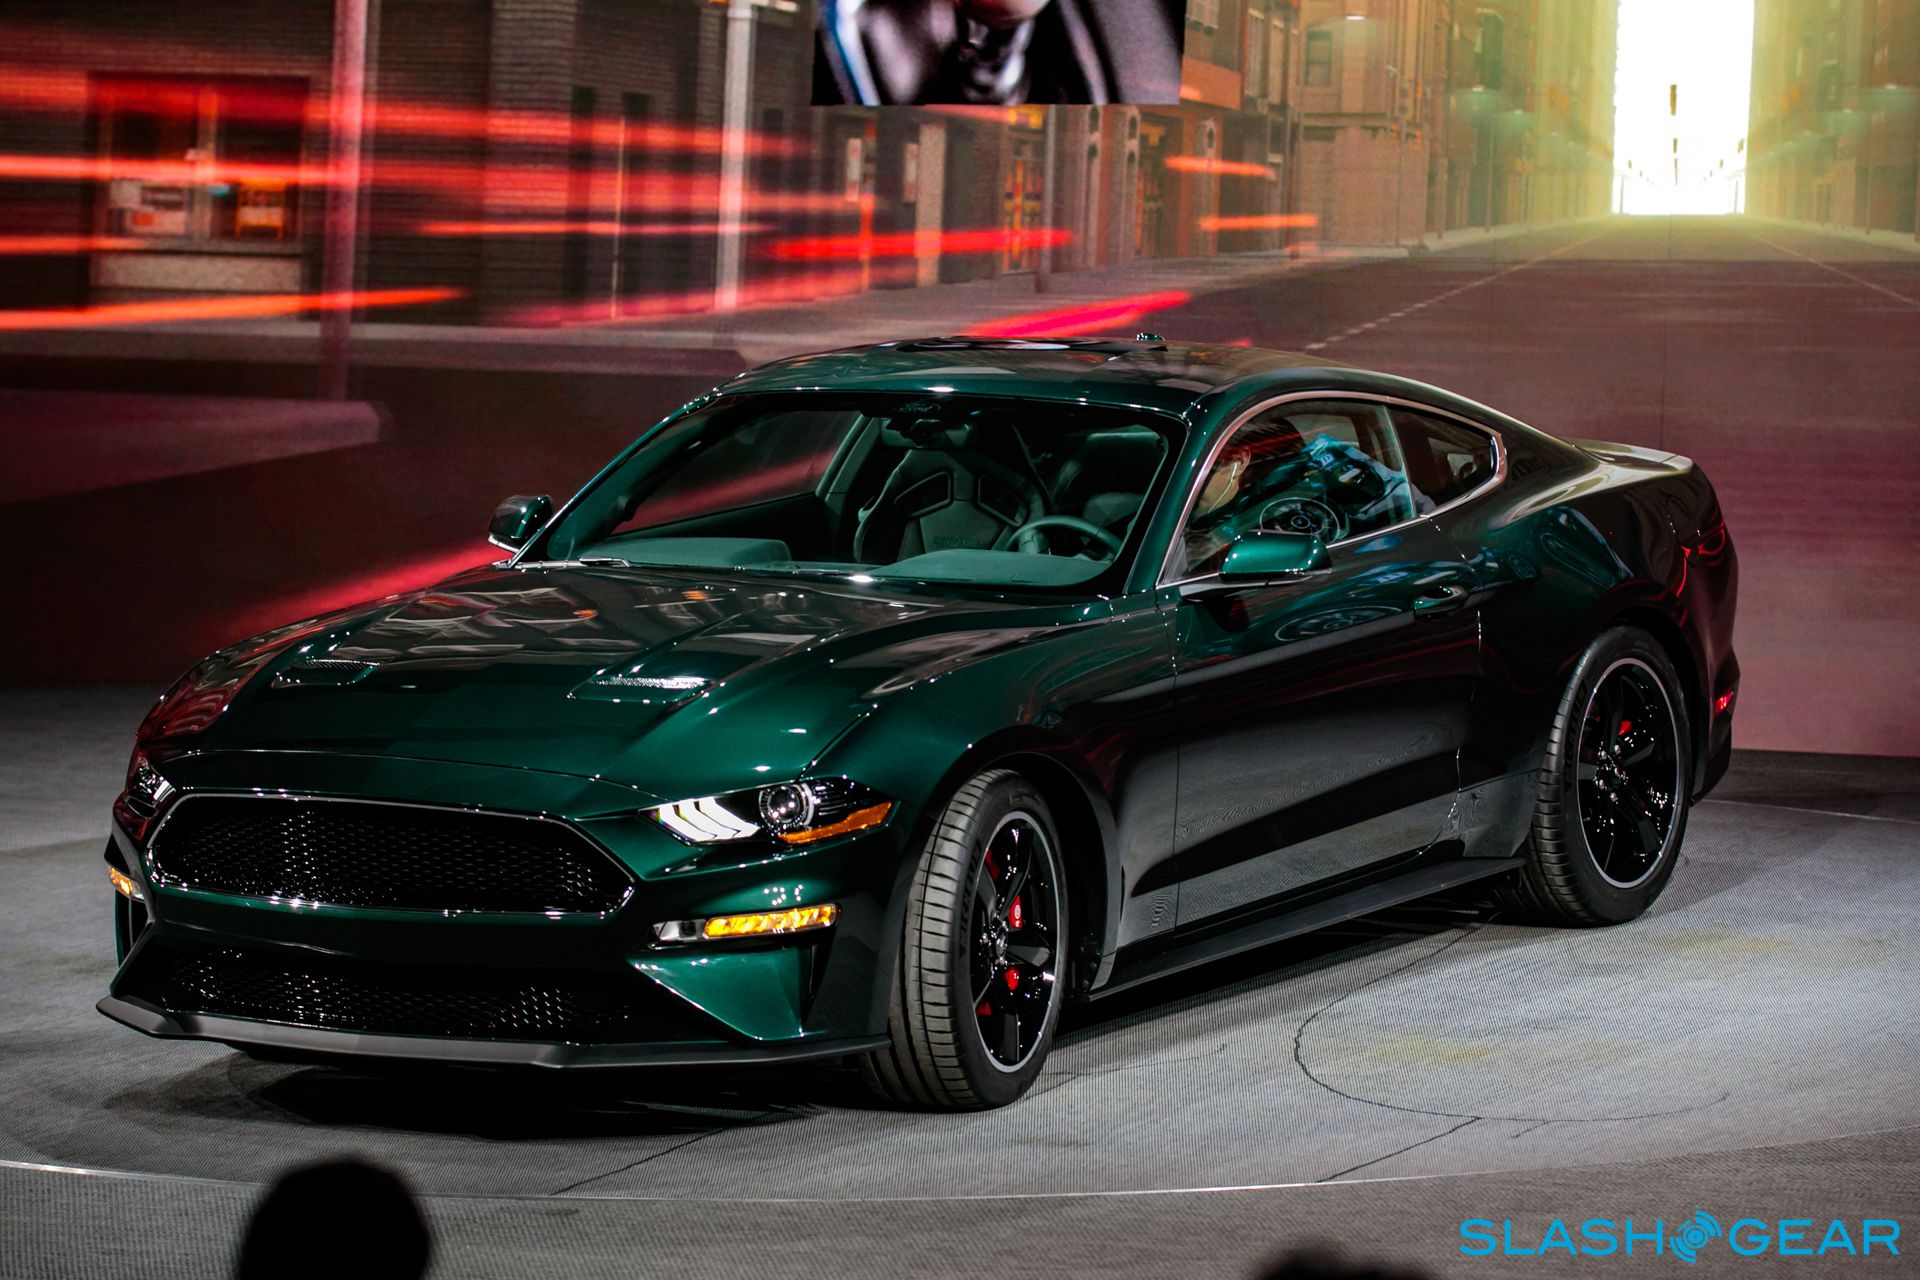 d70ba72b095579857f740a4ee65926c6 Cool Review About 2008 ford Mustang Gt Horsepower